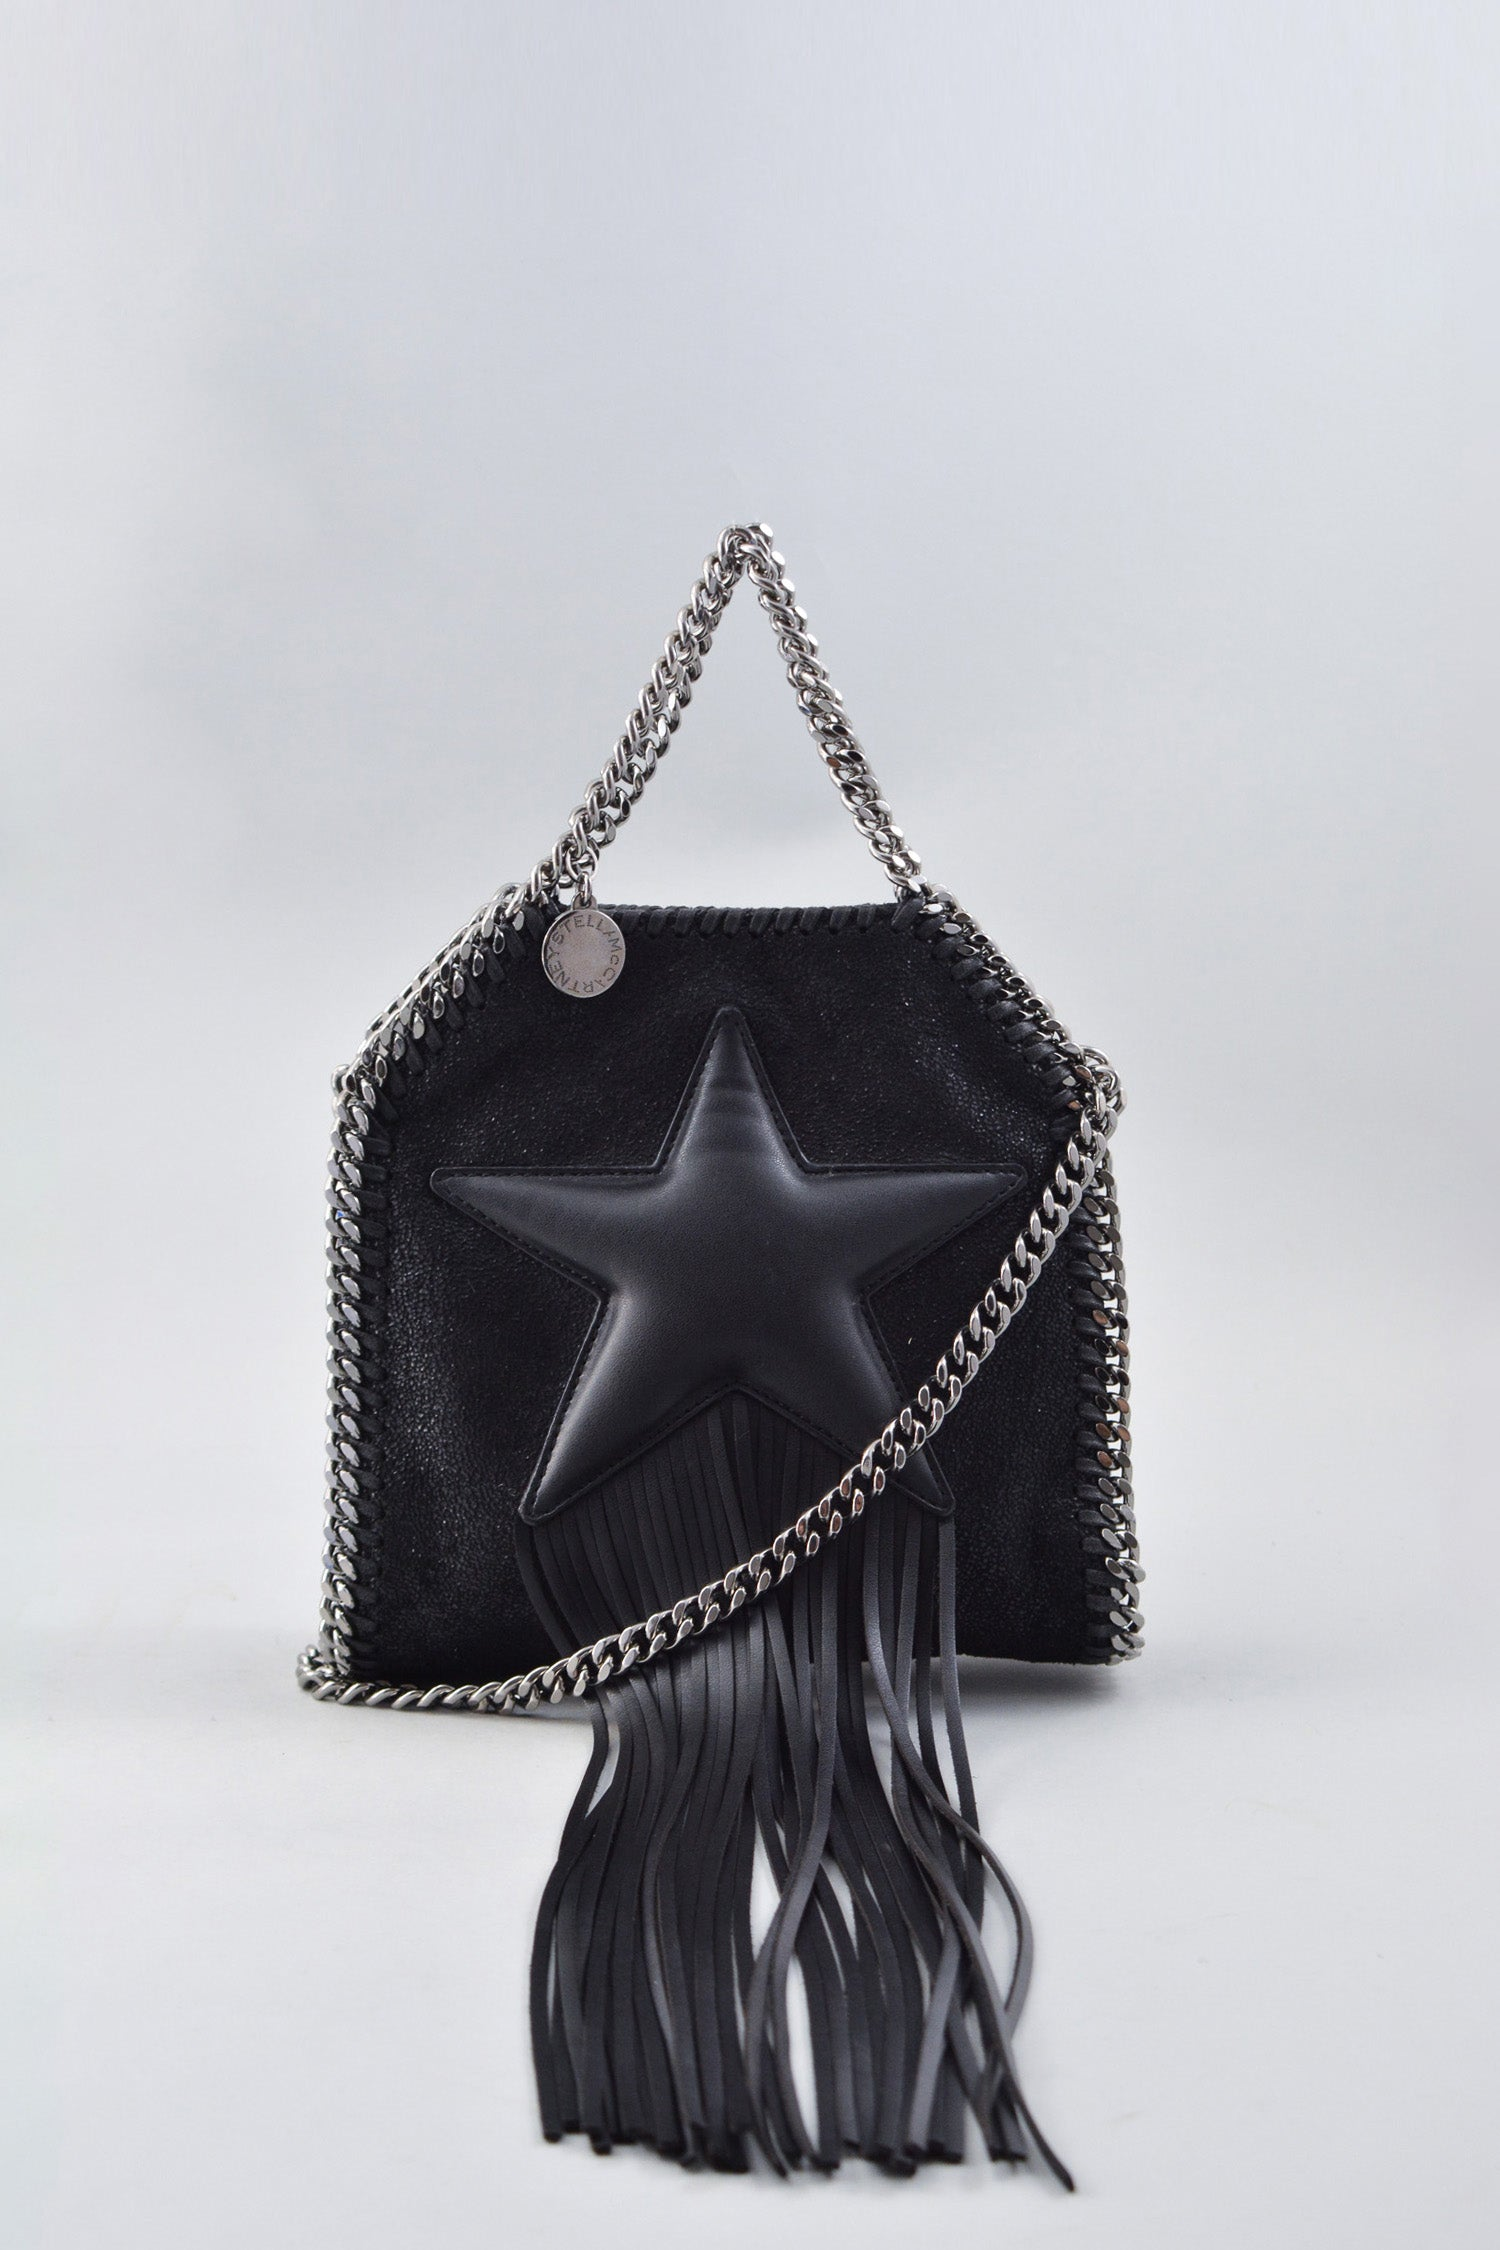 Stella McCartney Black Star Mini Falabella